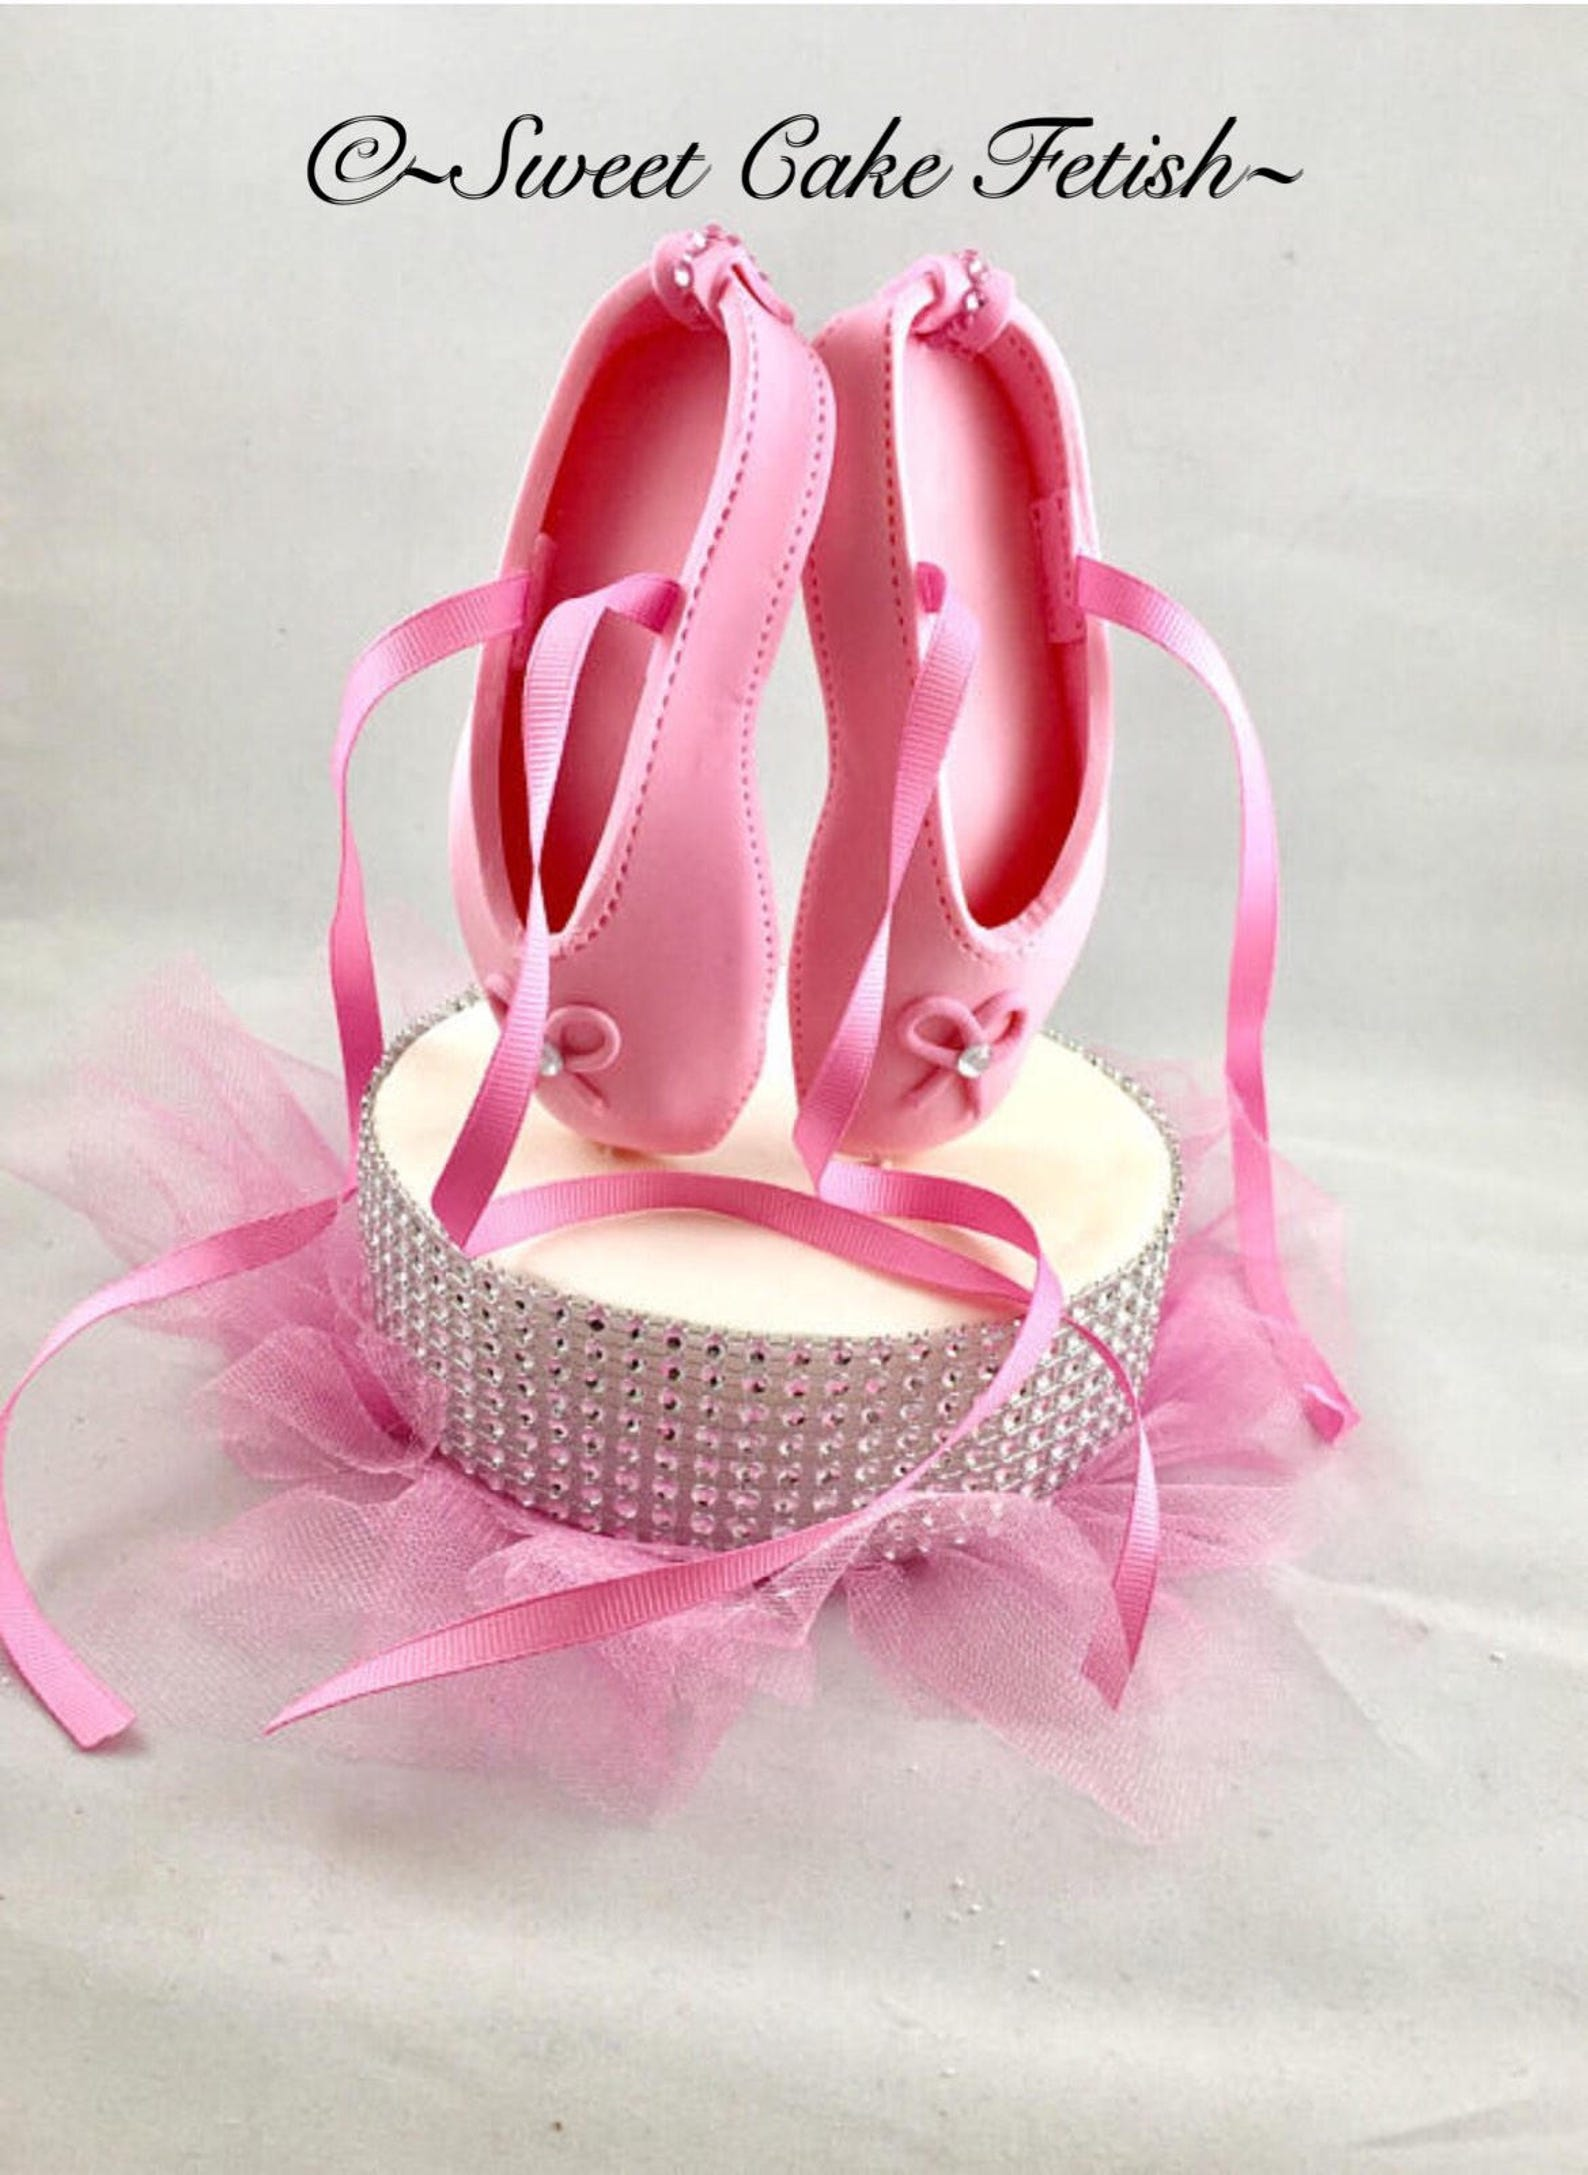 ballerina shoes and pedestal cake topper ballet shoes cake topper birthday cake topper ballerina cake decorations ballerina birt